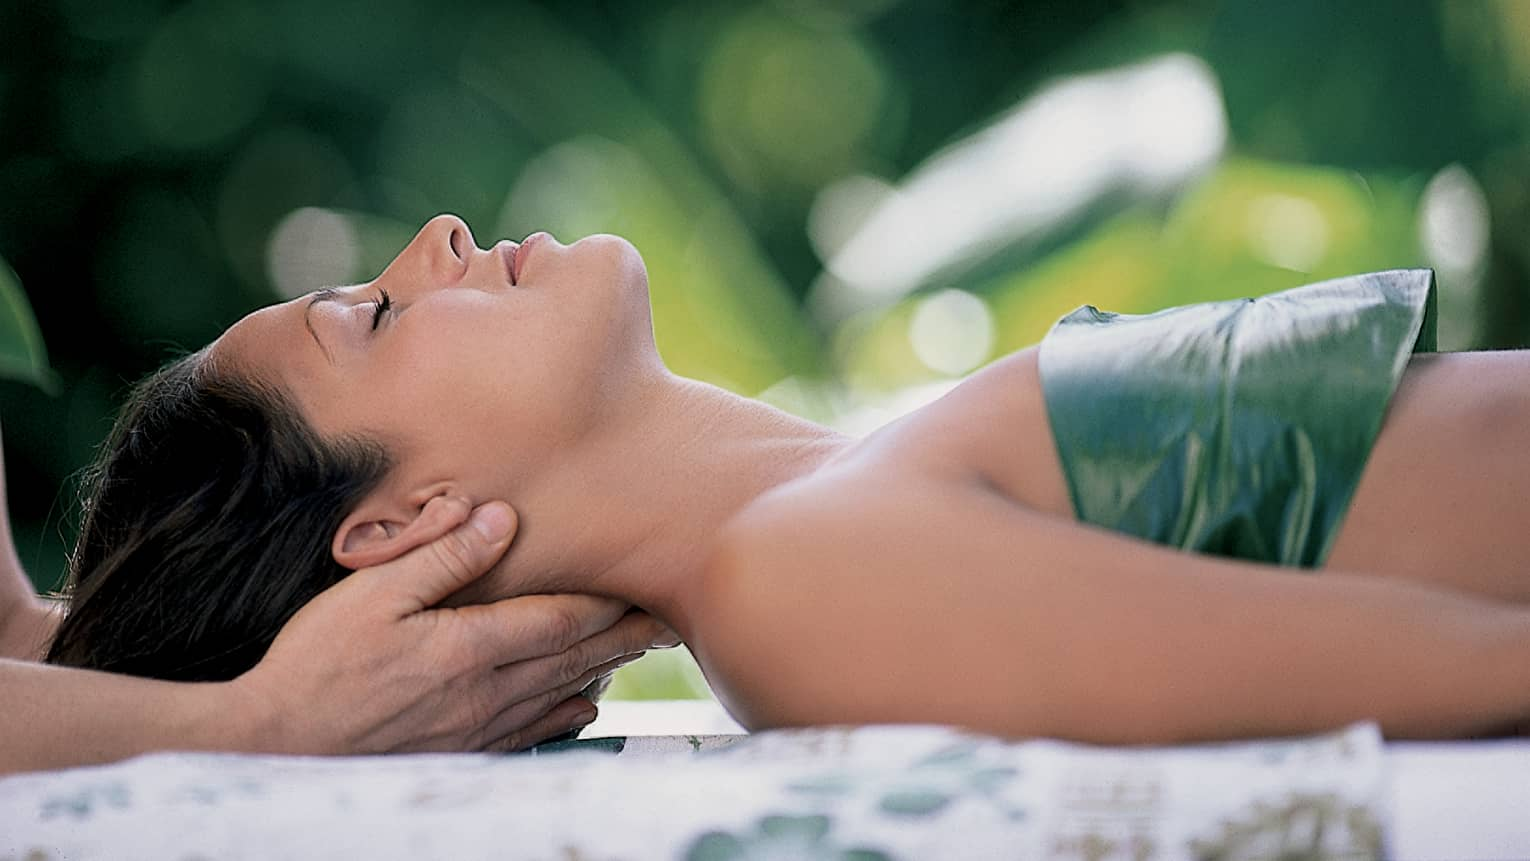 Woman with eyes closed lays on back on table with leaf over chest, hands massage her neck